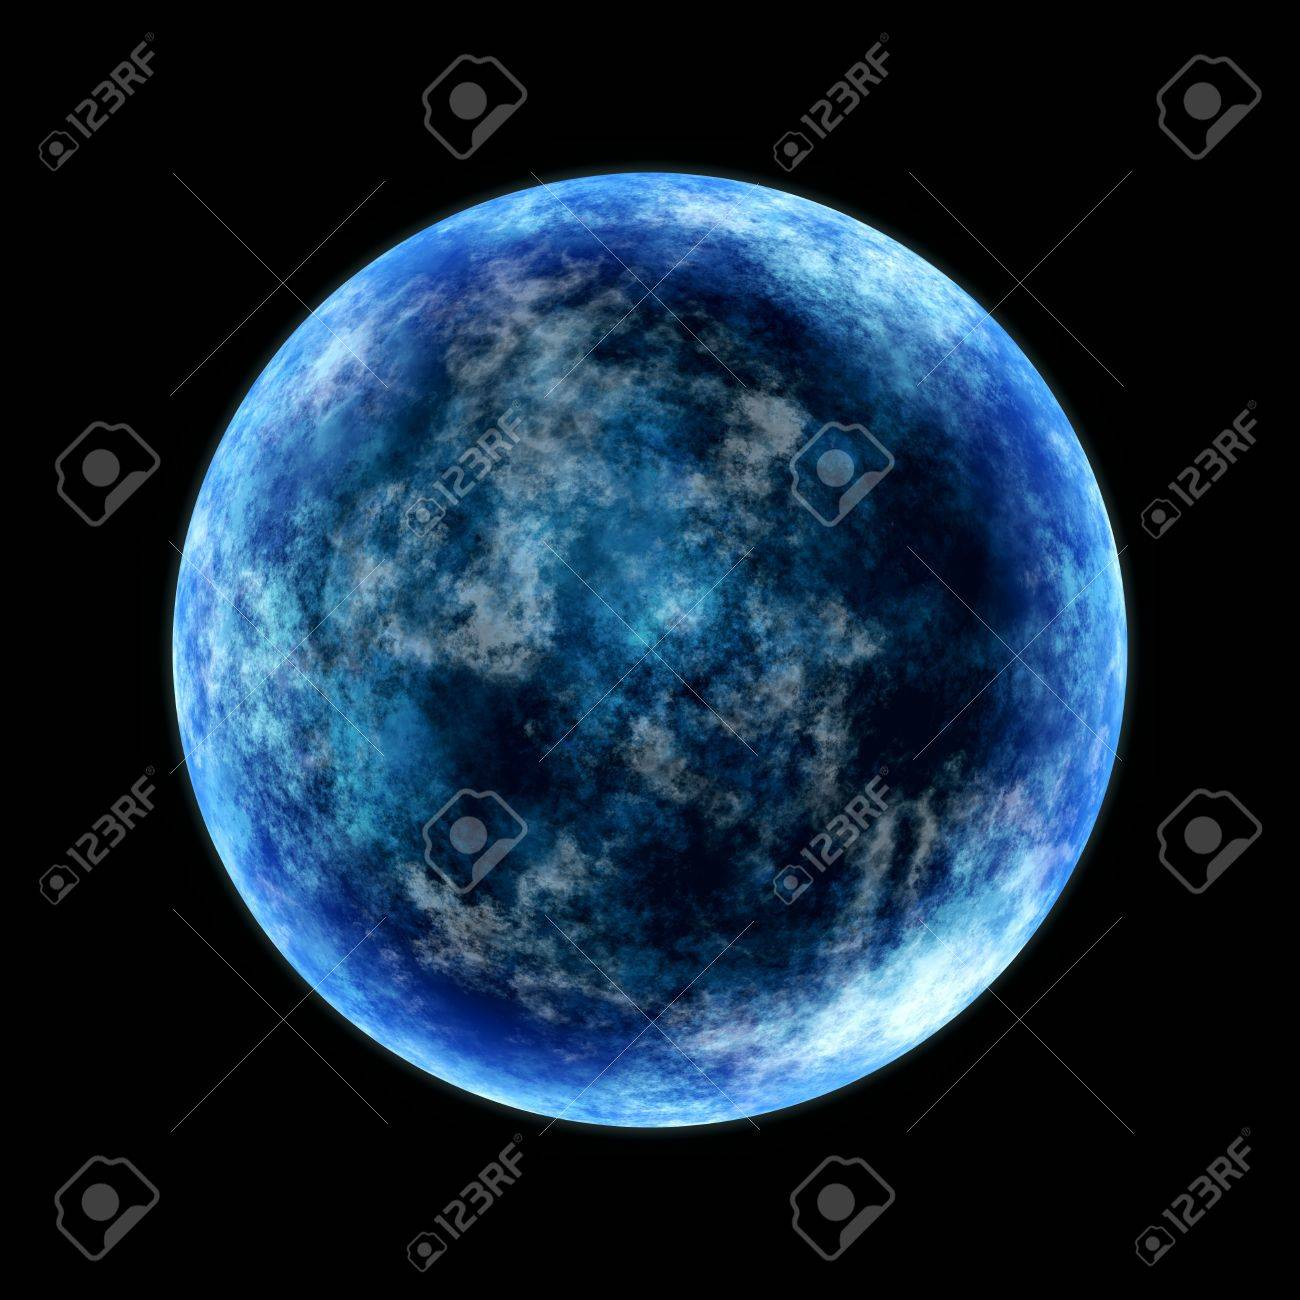 Round Planet In Cold Blue Lighted From The Side Stock Photo Picture And Royalty Free Image Image 4654642 The series premiered on mon may 16, 2016 on bbc and bears (s01e10) last aired on fri jul 01, 2016. round planet in cold blue lighted from the side